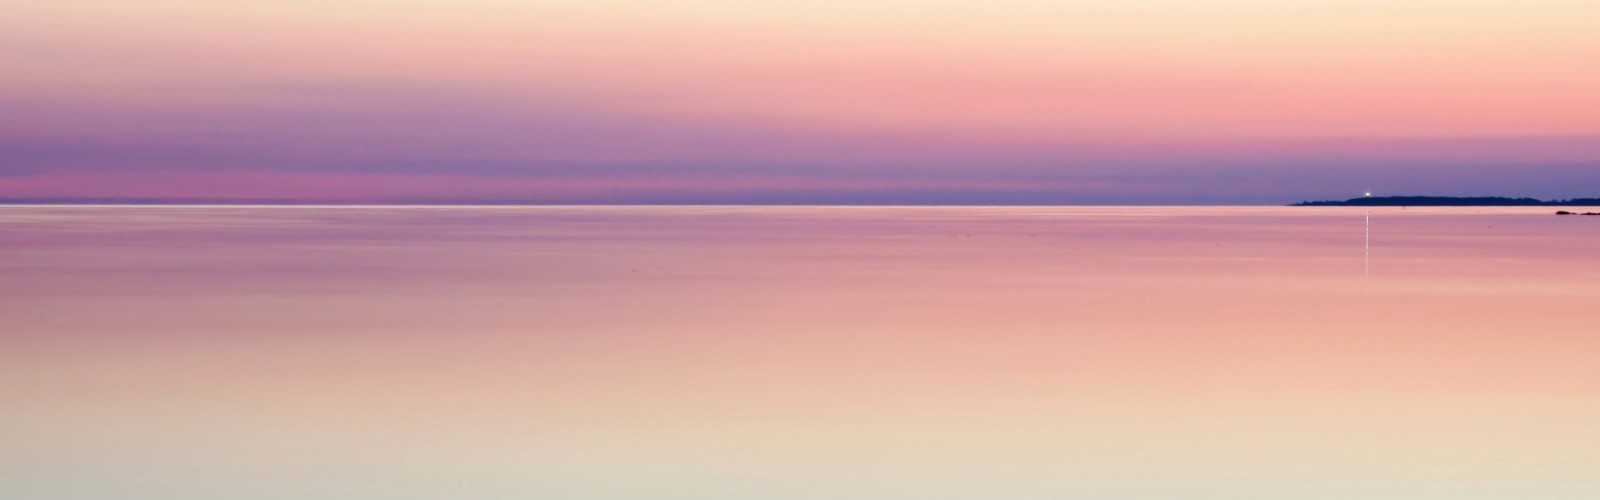 Calm sea at sunset